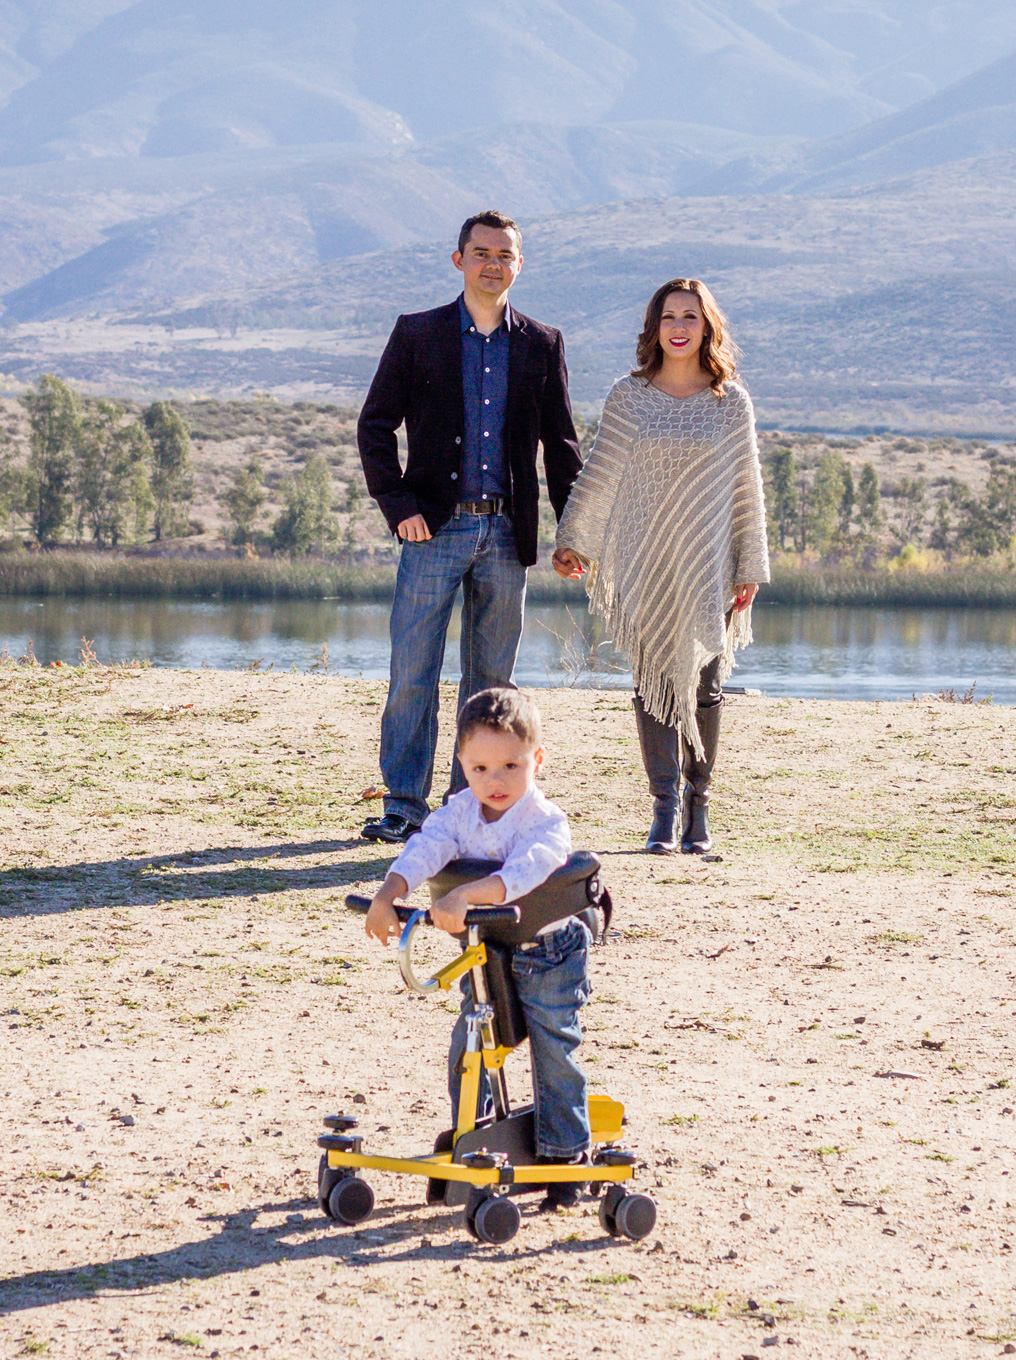 PMD Foundation board member, Carlos Labrada with his wife, Yezabel and their son Leo, who was diagnosed with PMD at 6 months of age.